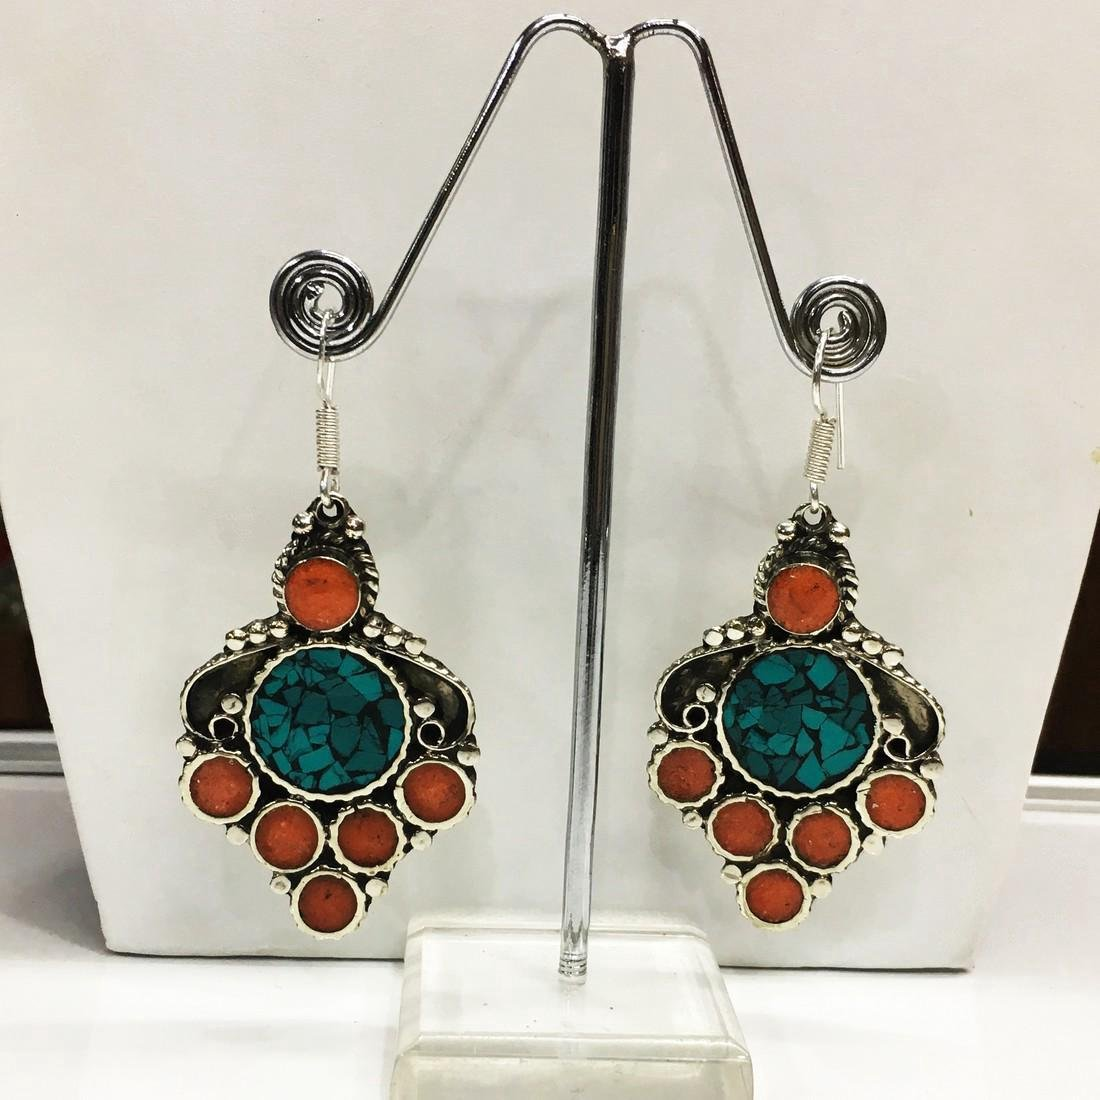 Vintage Ethnic Tibetan Silver Turquoise Coral Earrings - 3